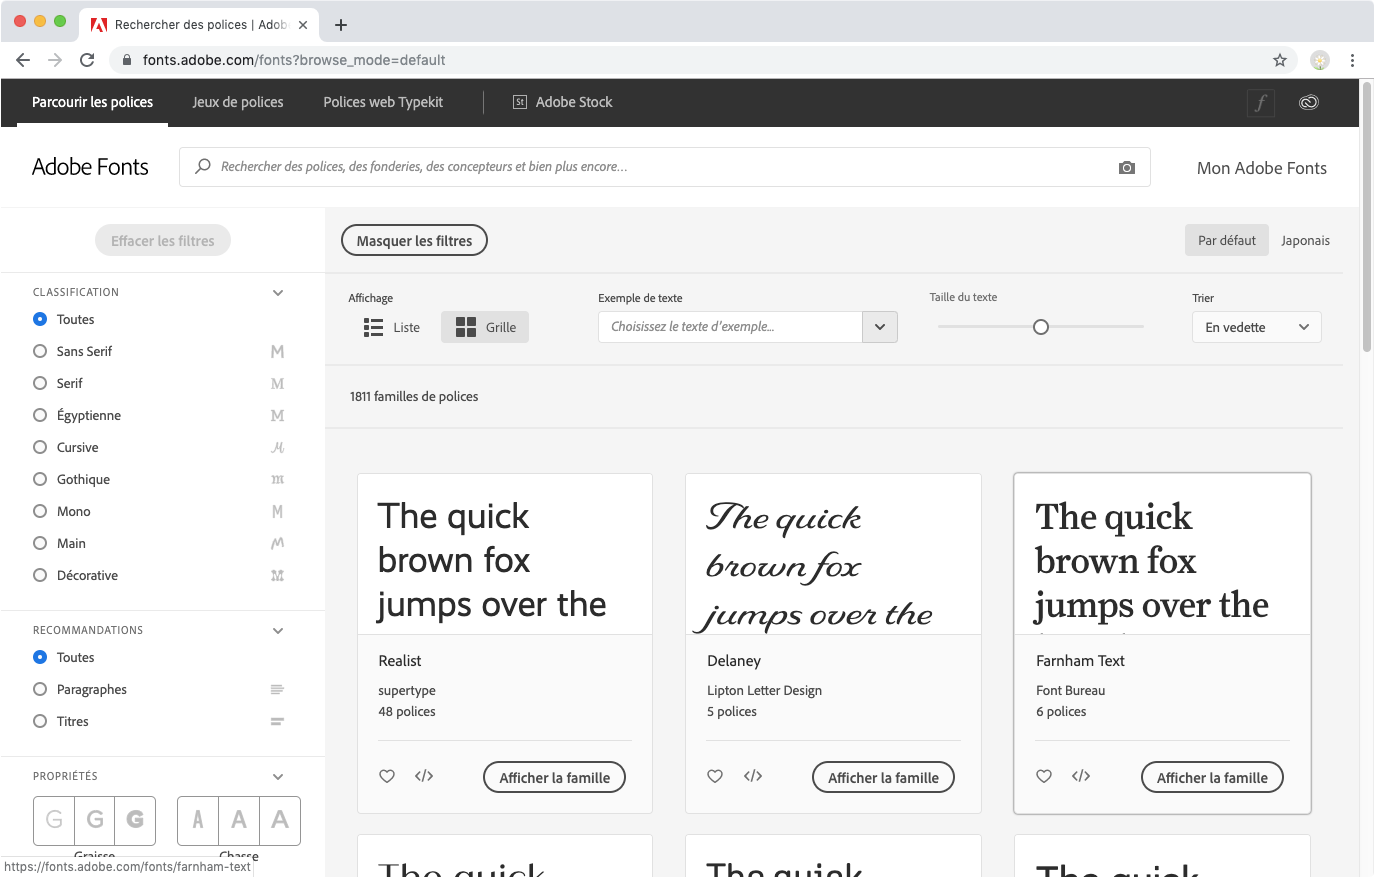 Basculement entre les collections de polices sur fonts.adobe.com